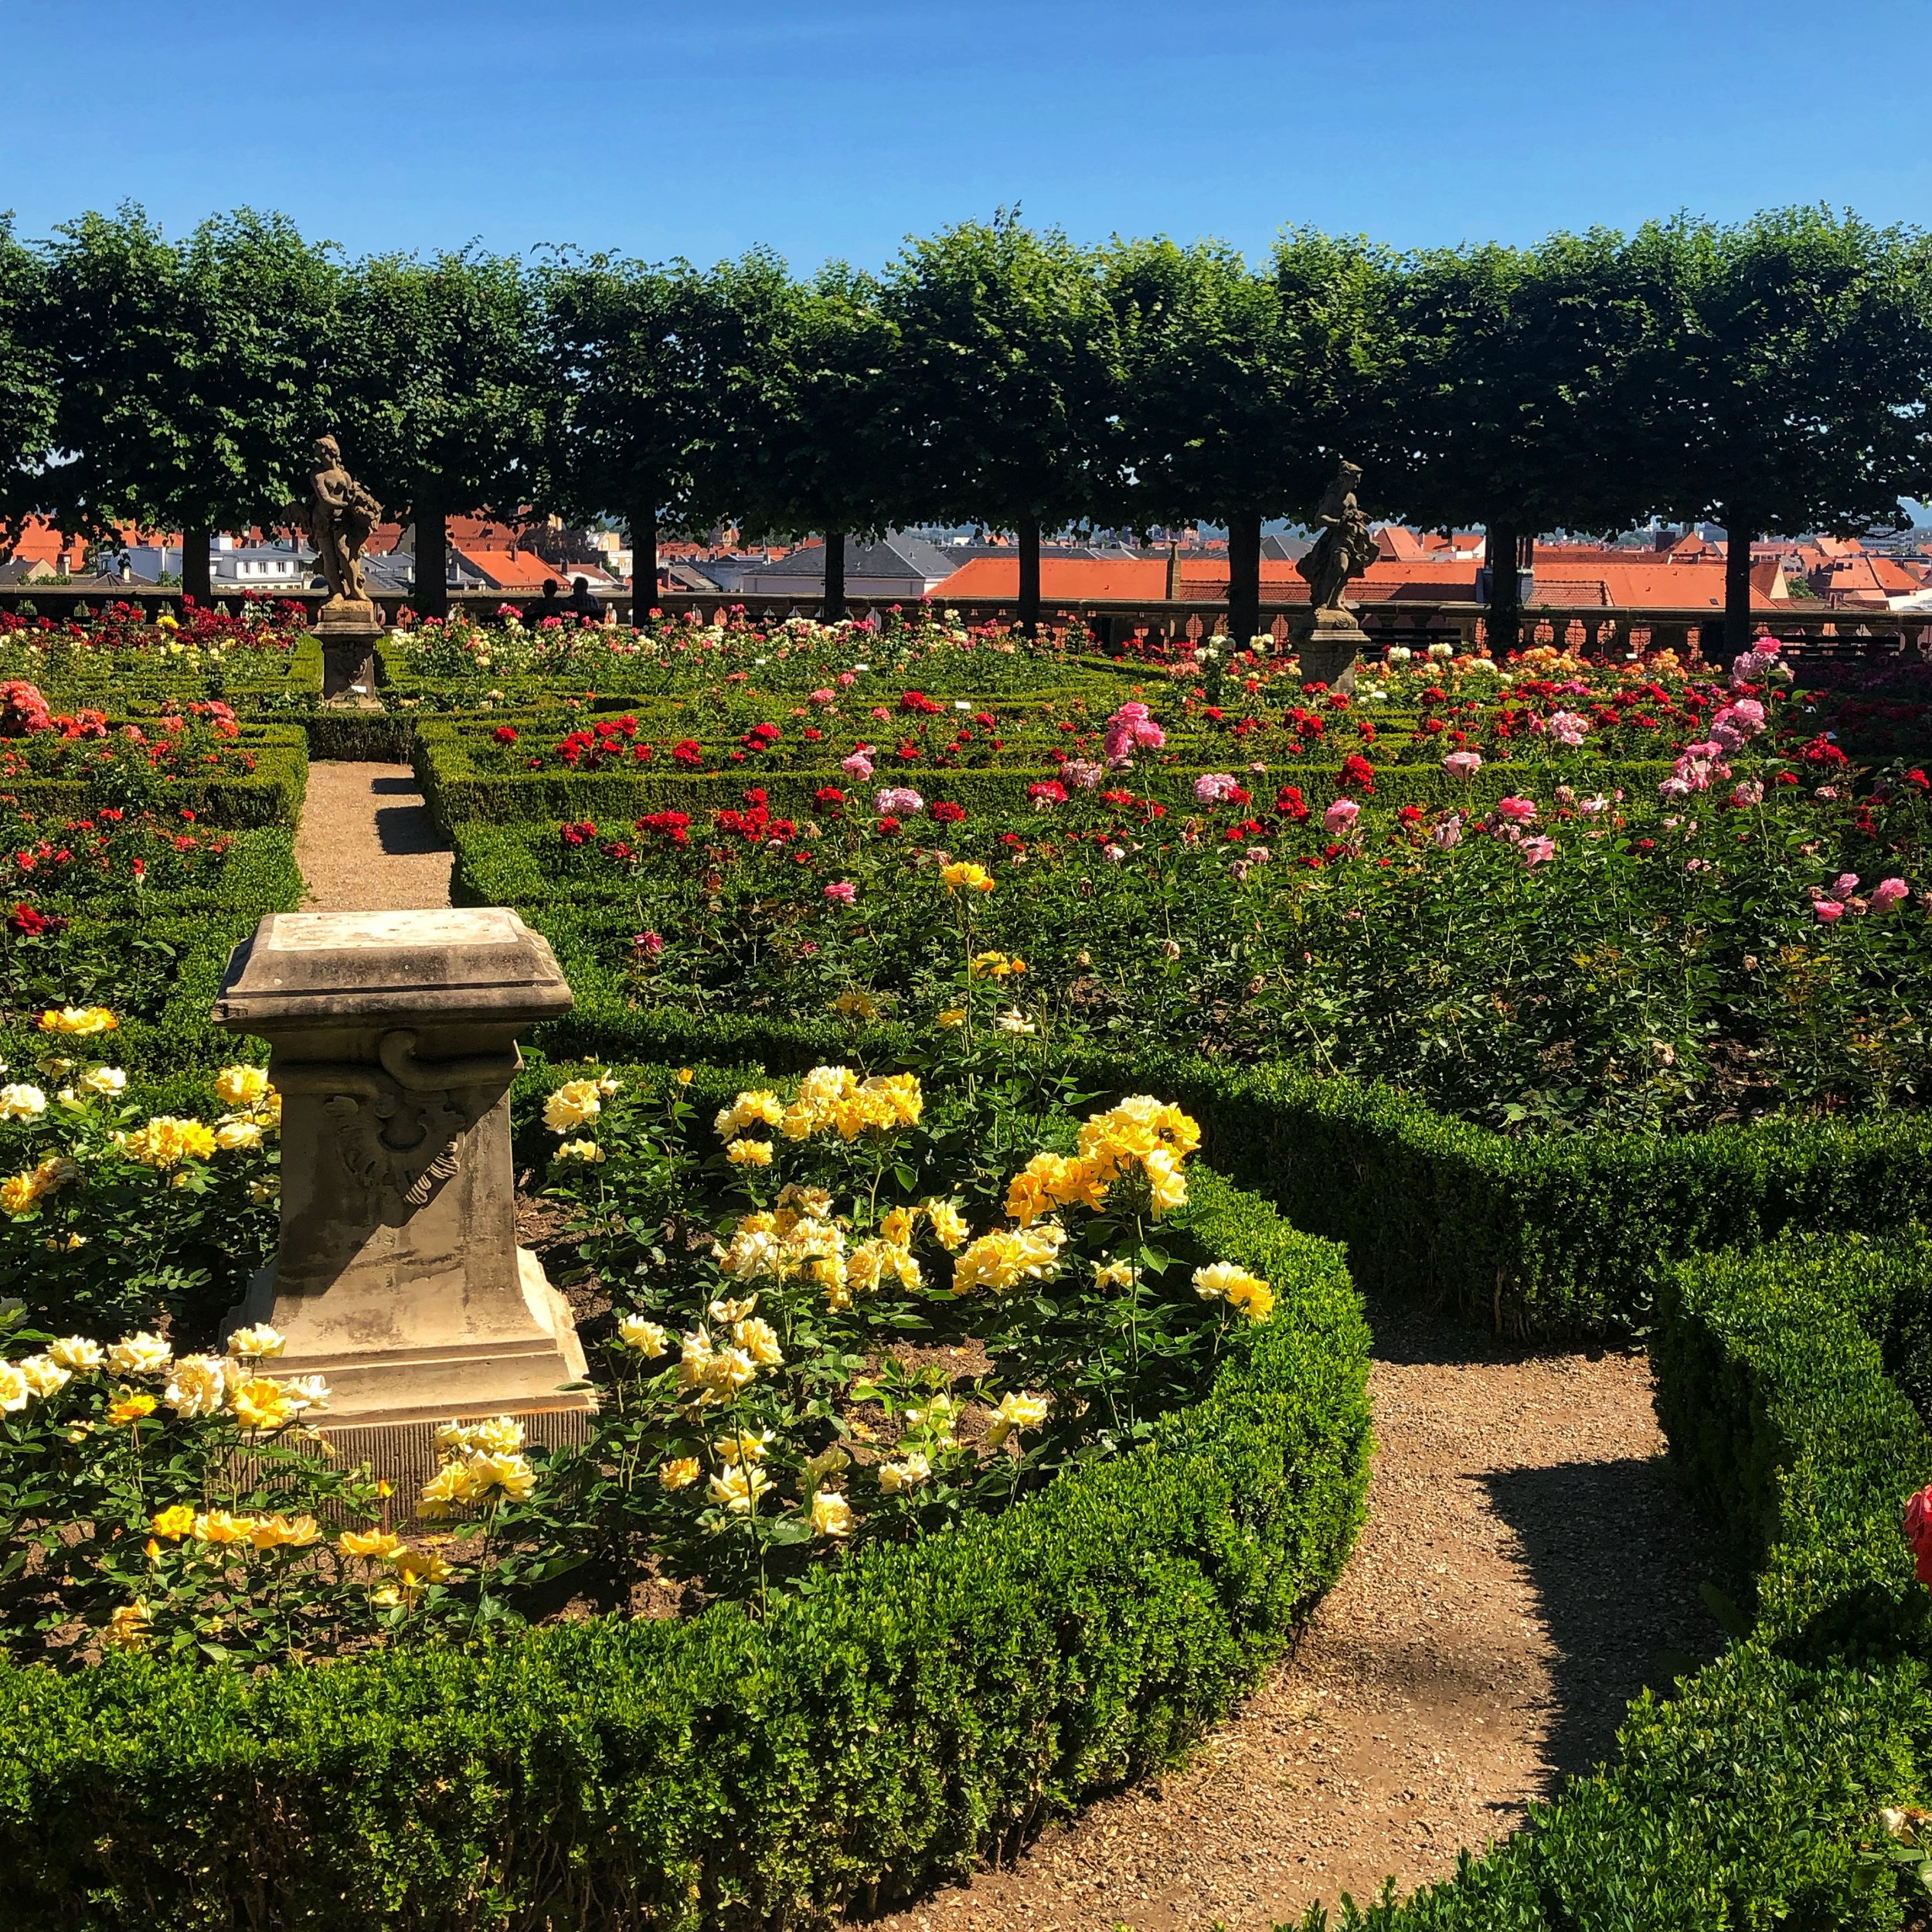 The Bamberg rose garden is tucked just out of sight, look for it on your map!